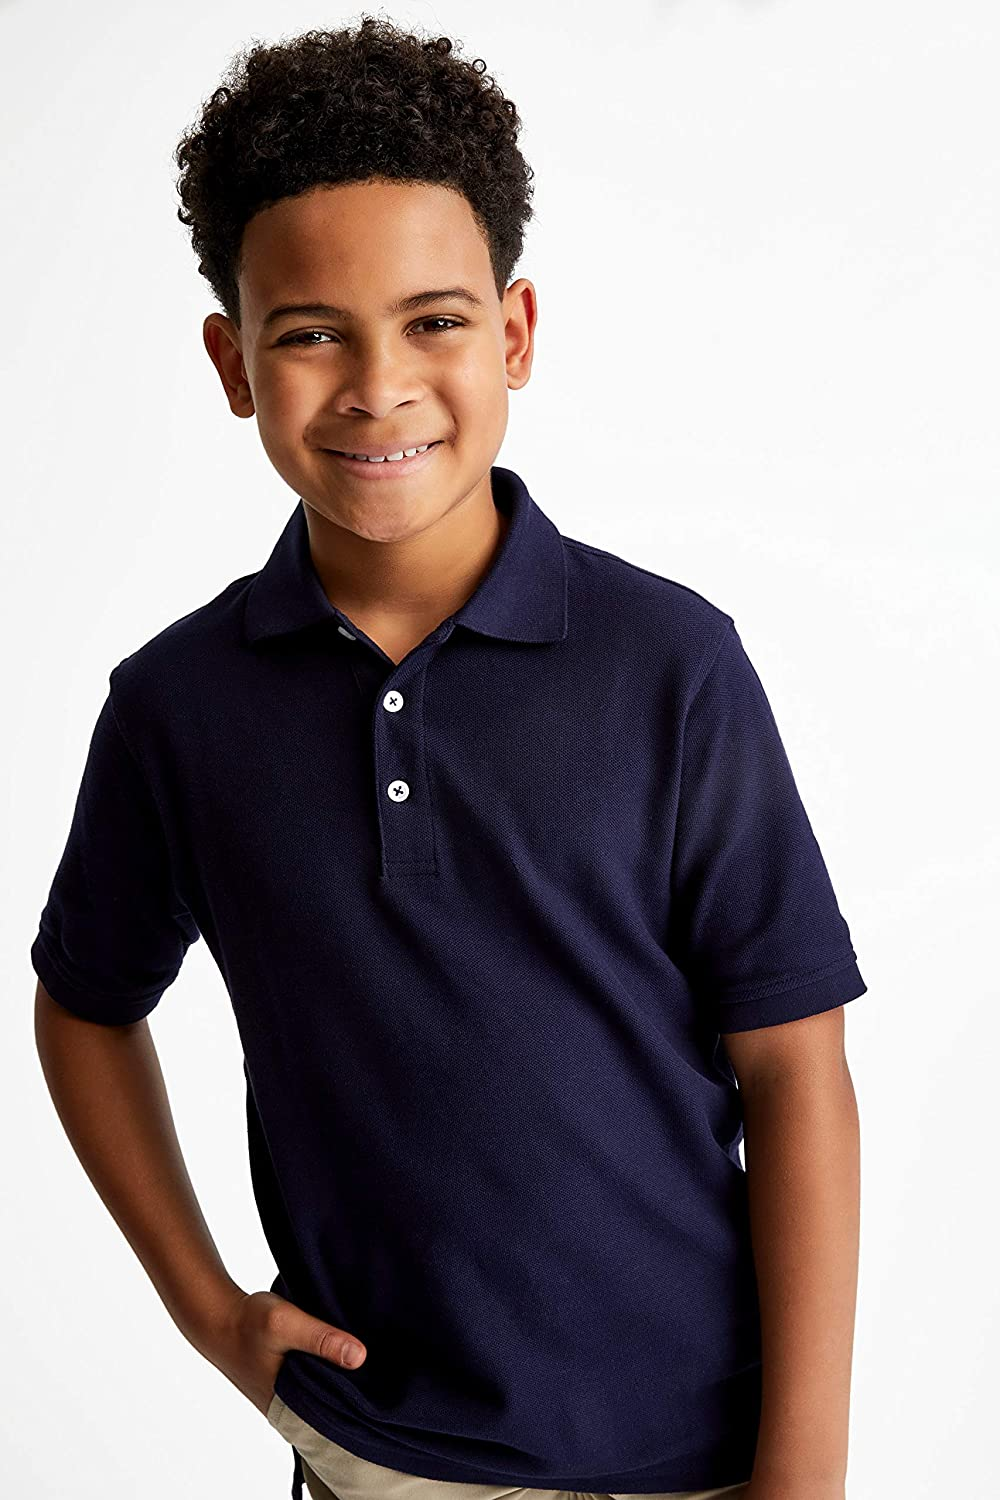 6//7 Standard /& Husky French Toast Boys Little Short Sleeve Pique Polo Shirt S Navy